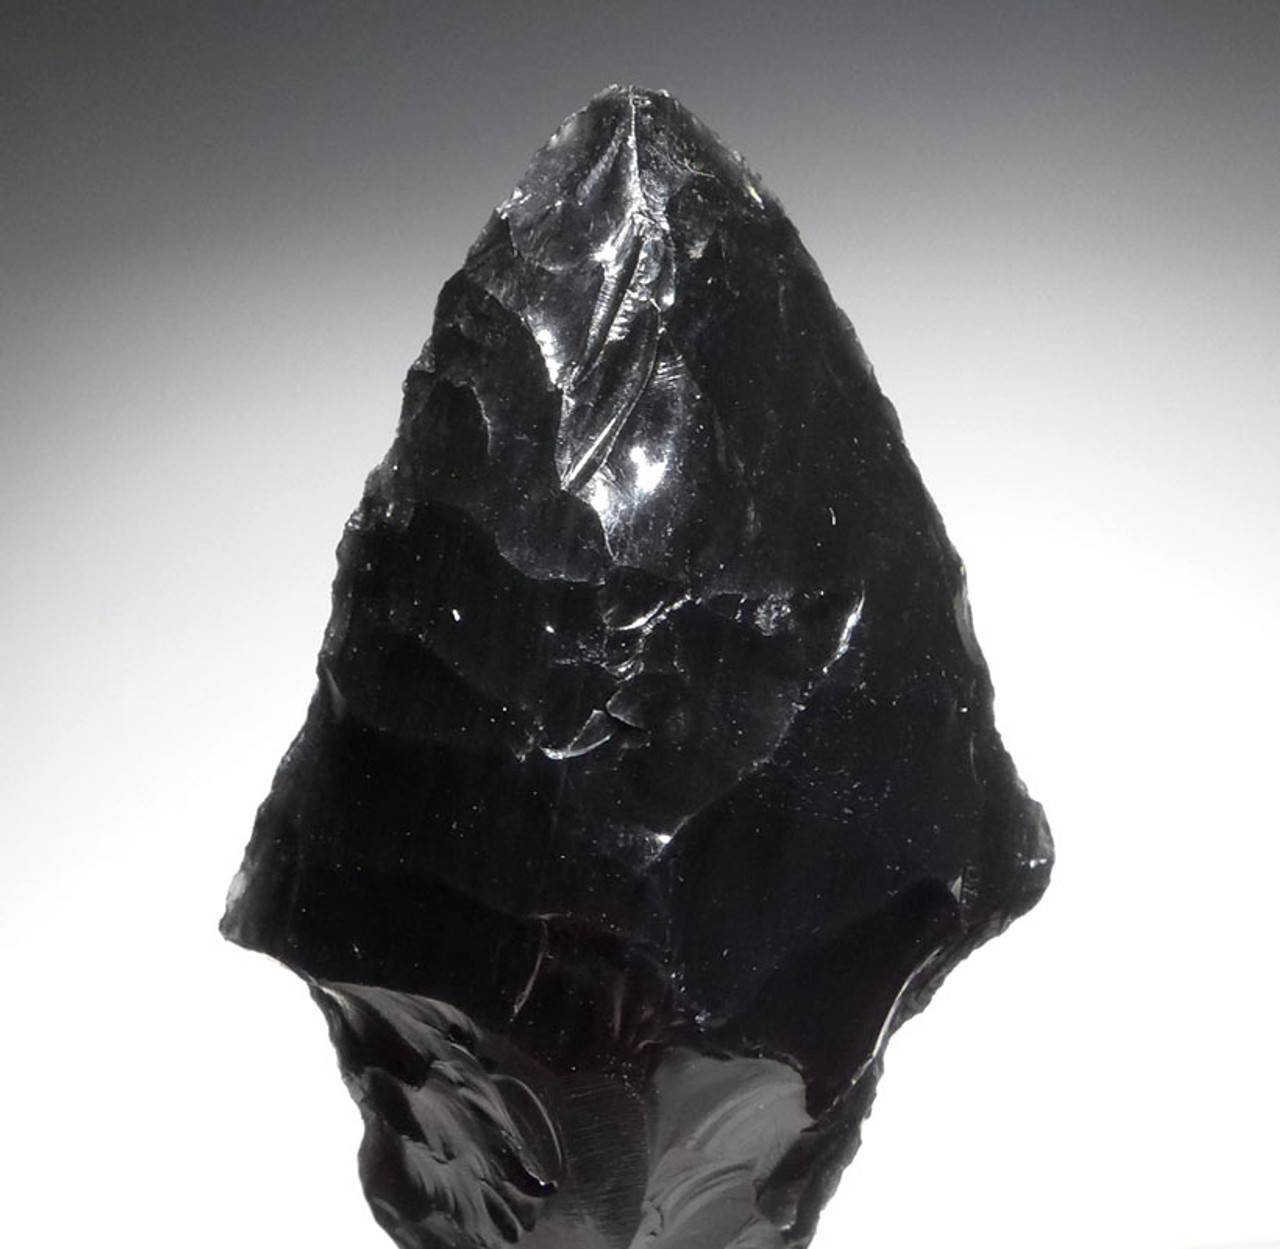 VERY ROBUST WELL-MADE PRE-COLUMBIAN OBSIDIAN ATLATL HEAD PROJECTILE POINT DESIGNED FOR PENETRATION FROM THE HEFLIN COLLECTION * PC261